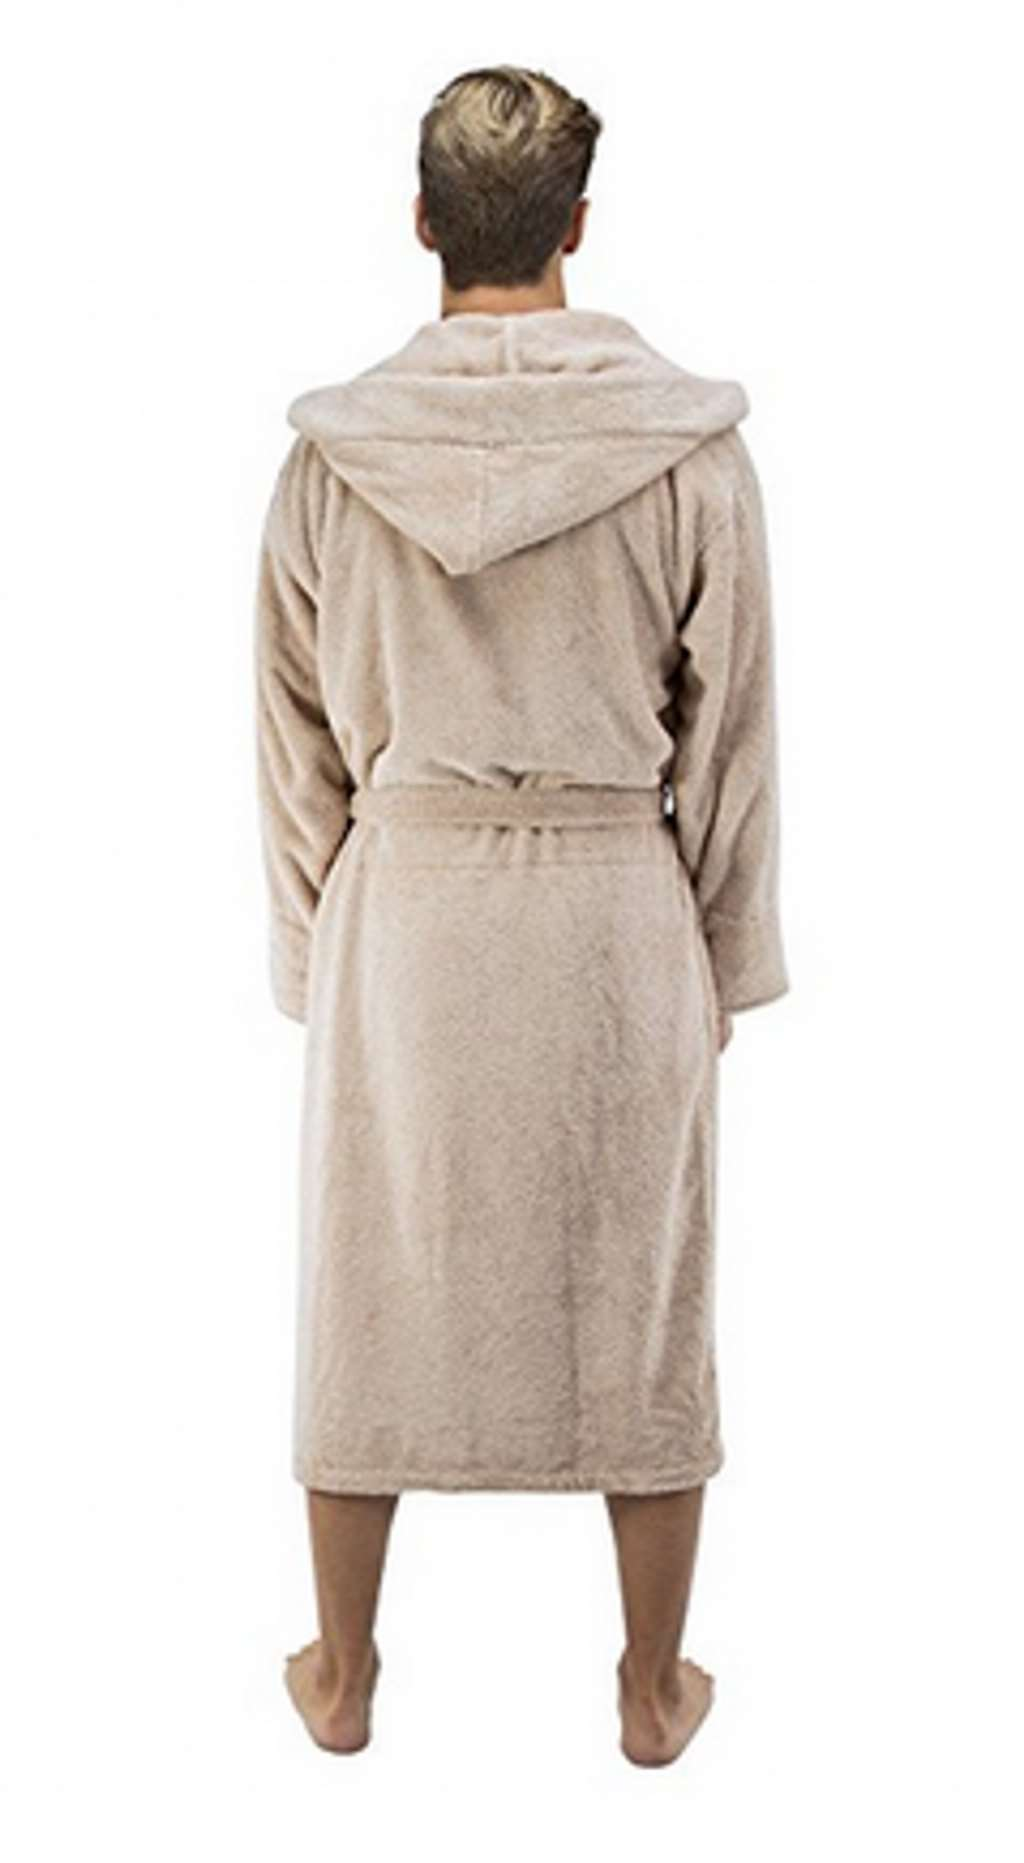 5268eb6bf4 Comfy Robes - Comfy Robes Men s Deluxe 20 oz. Turkish Cotton Hooded Bathrobe  - Walmart.com